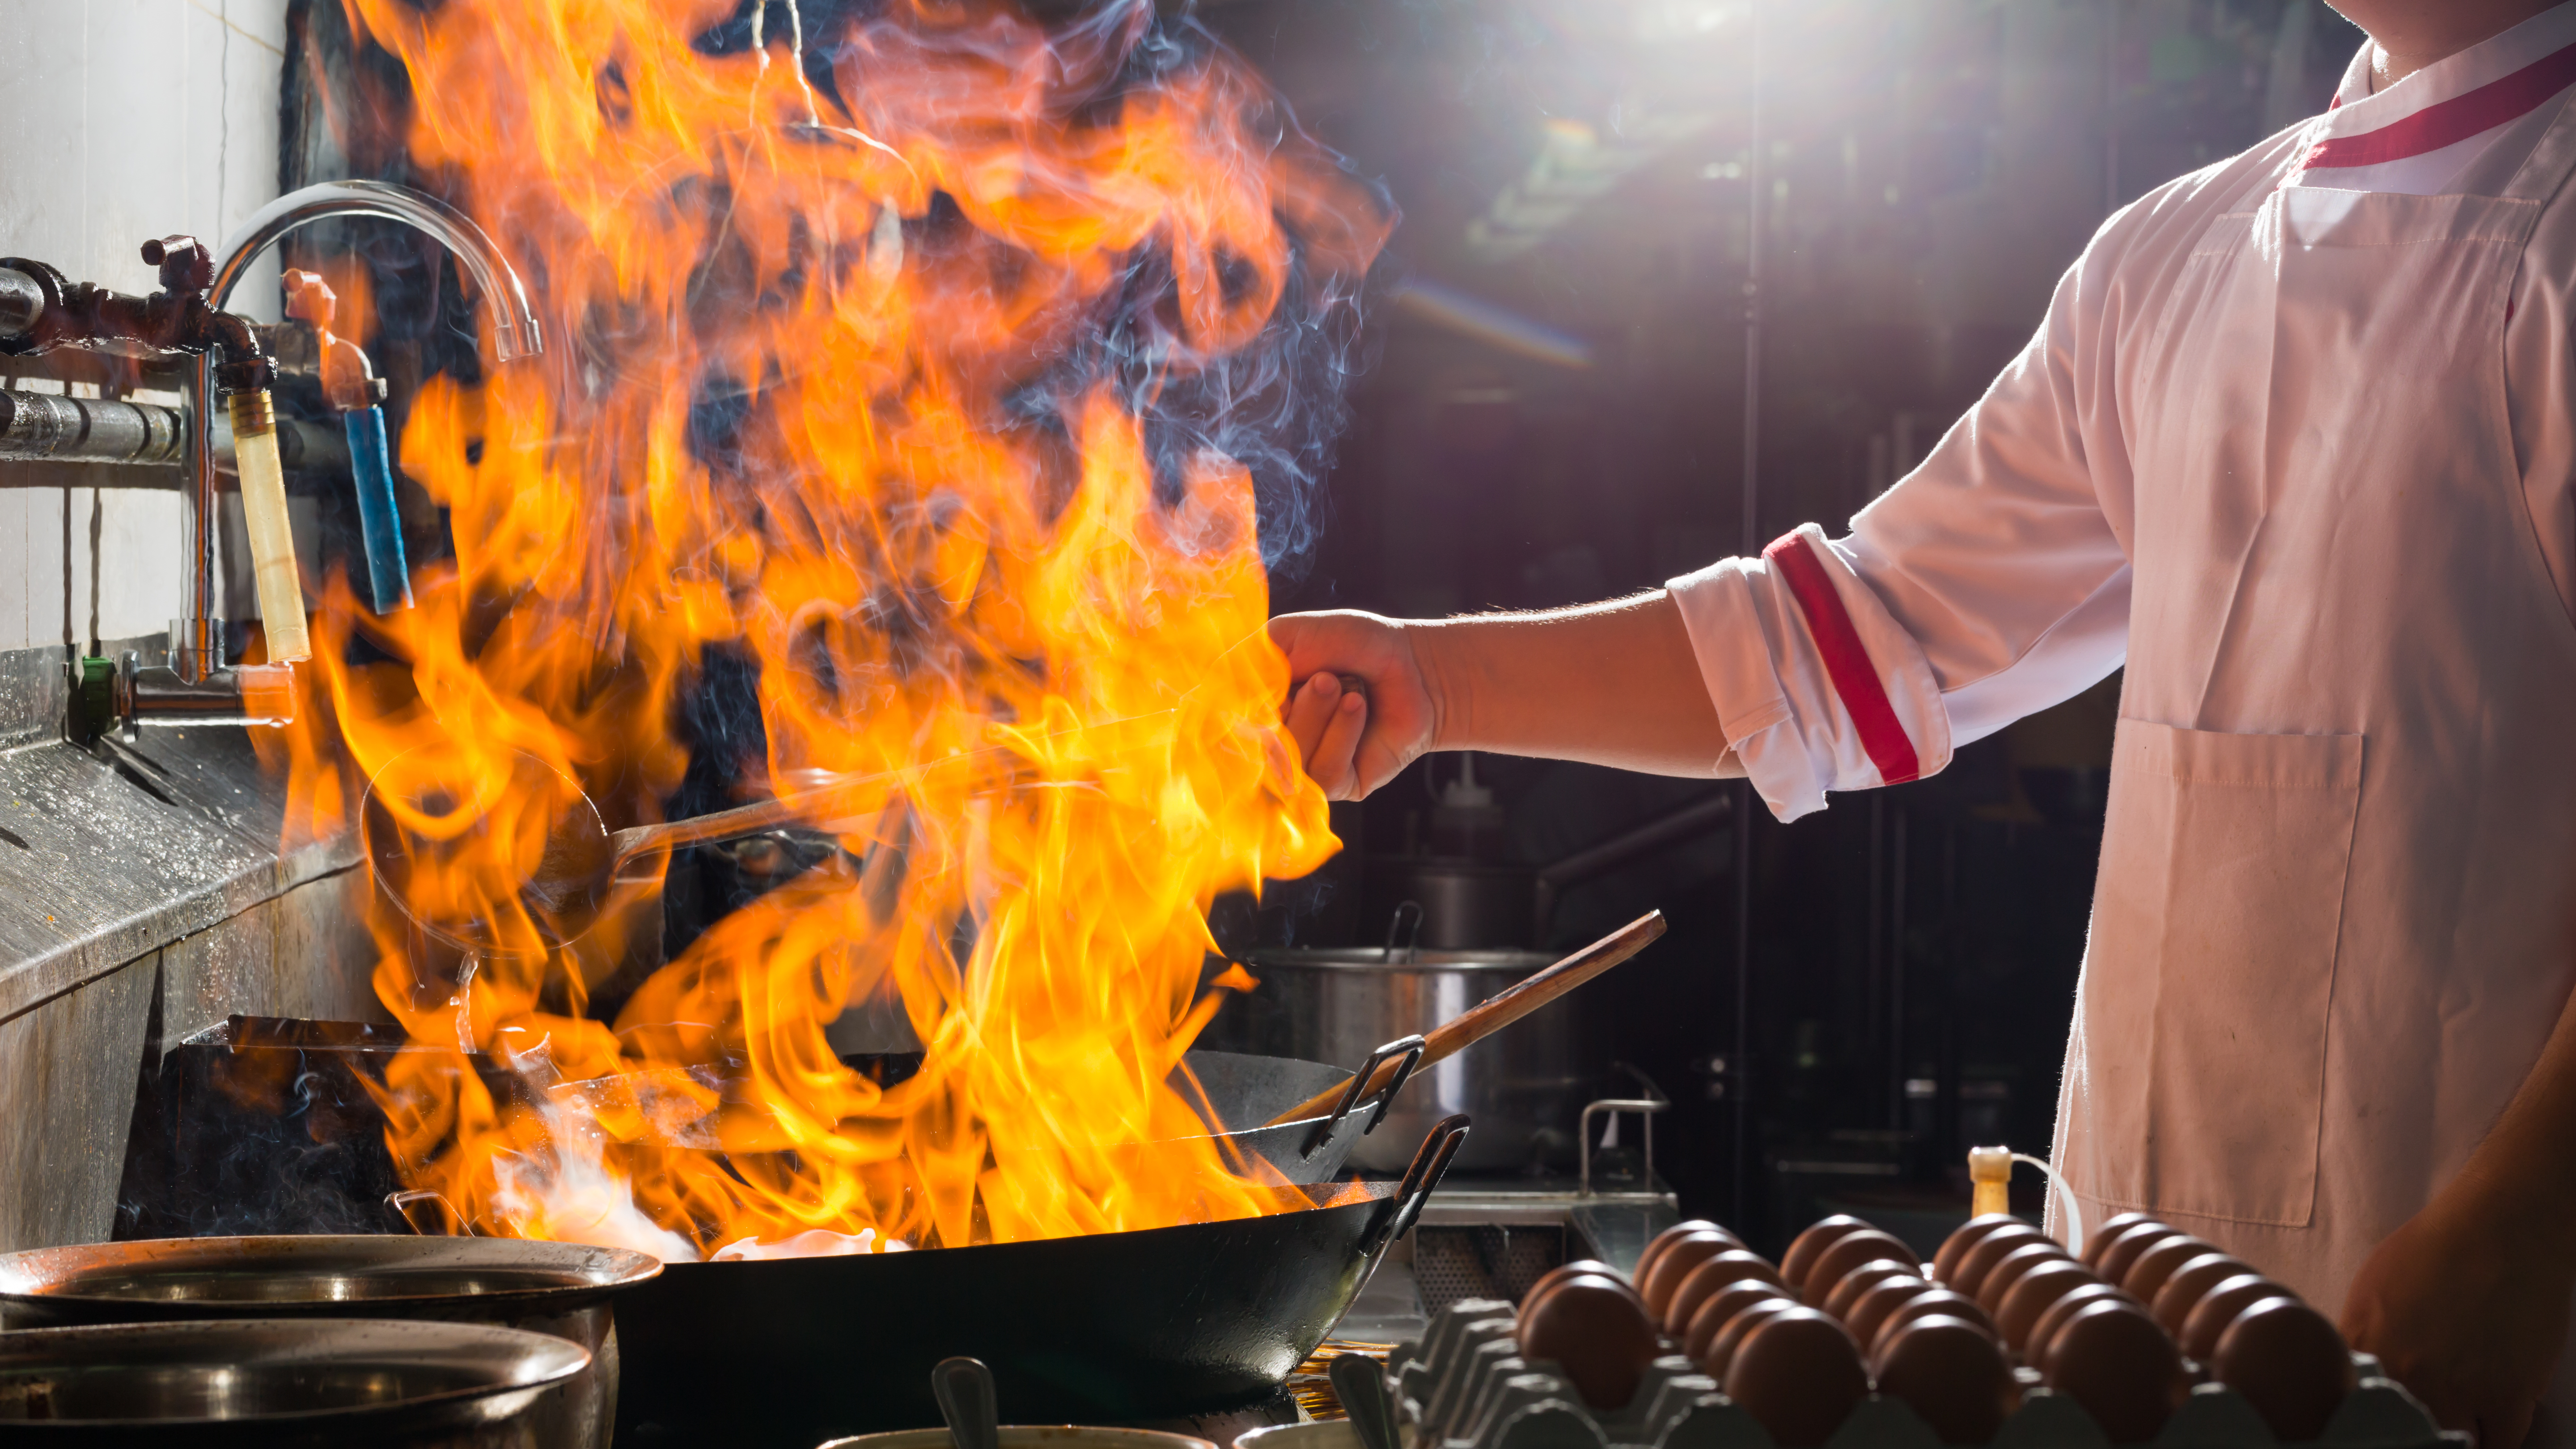 An iron pan on fire in a restaurant kitchen